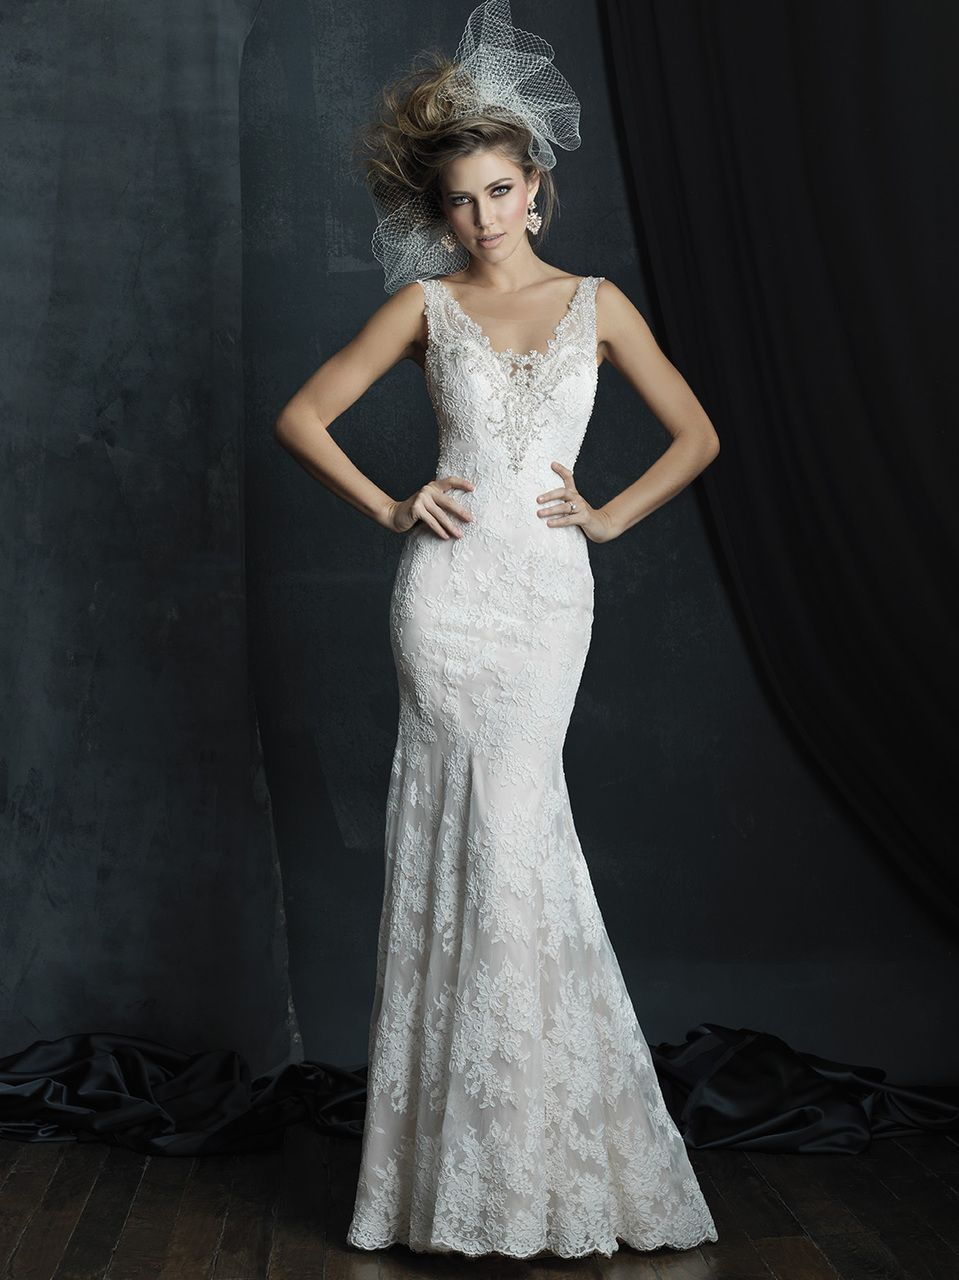 bridals by lori - Allure Couture Bridals 0131483, In store (http://shop.bridalsbylori.com/allure-couture-bridals-0131483/)